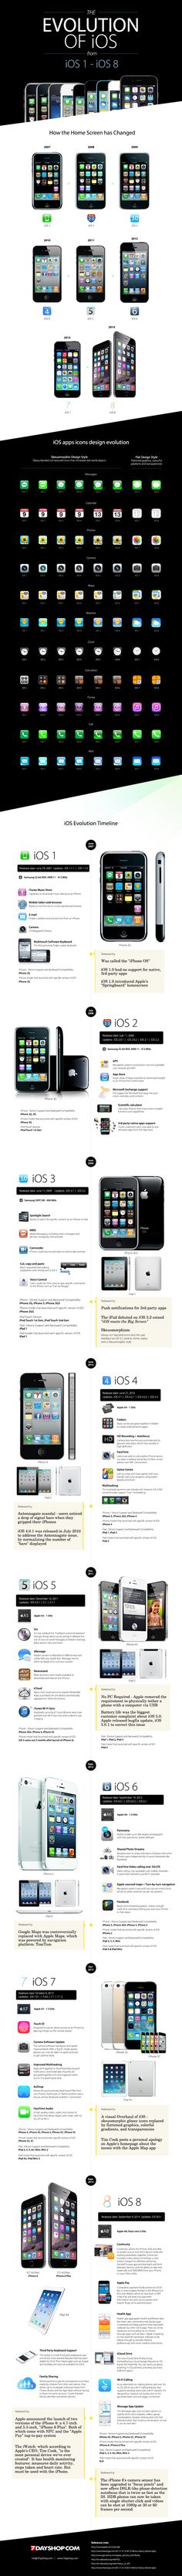 On iOS 8 launch day, The Evolution of iOS from iOS 1- iOS 8 infographic is a timeline of the i...